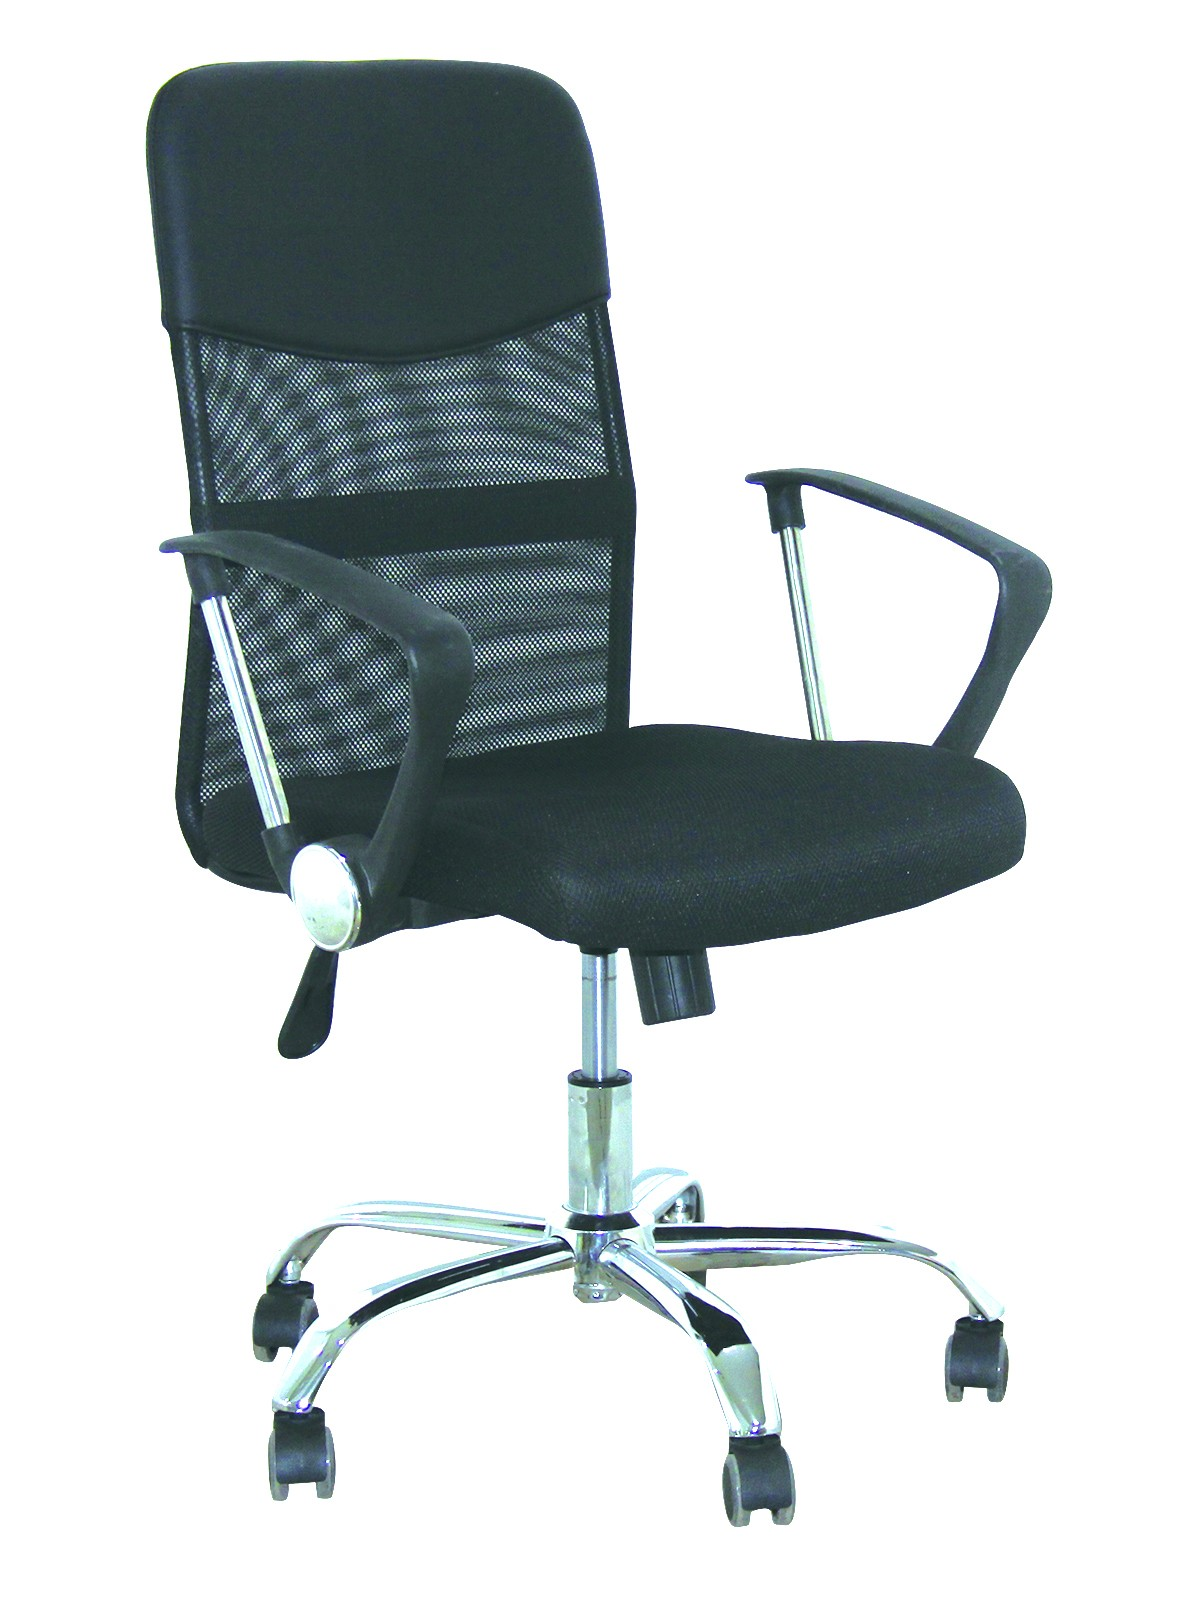 Office Armchair DISCOVER NEW (H), Mesh And Mesh Fabric Black